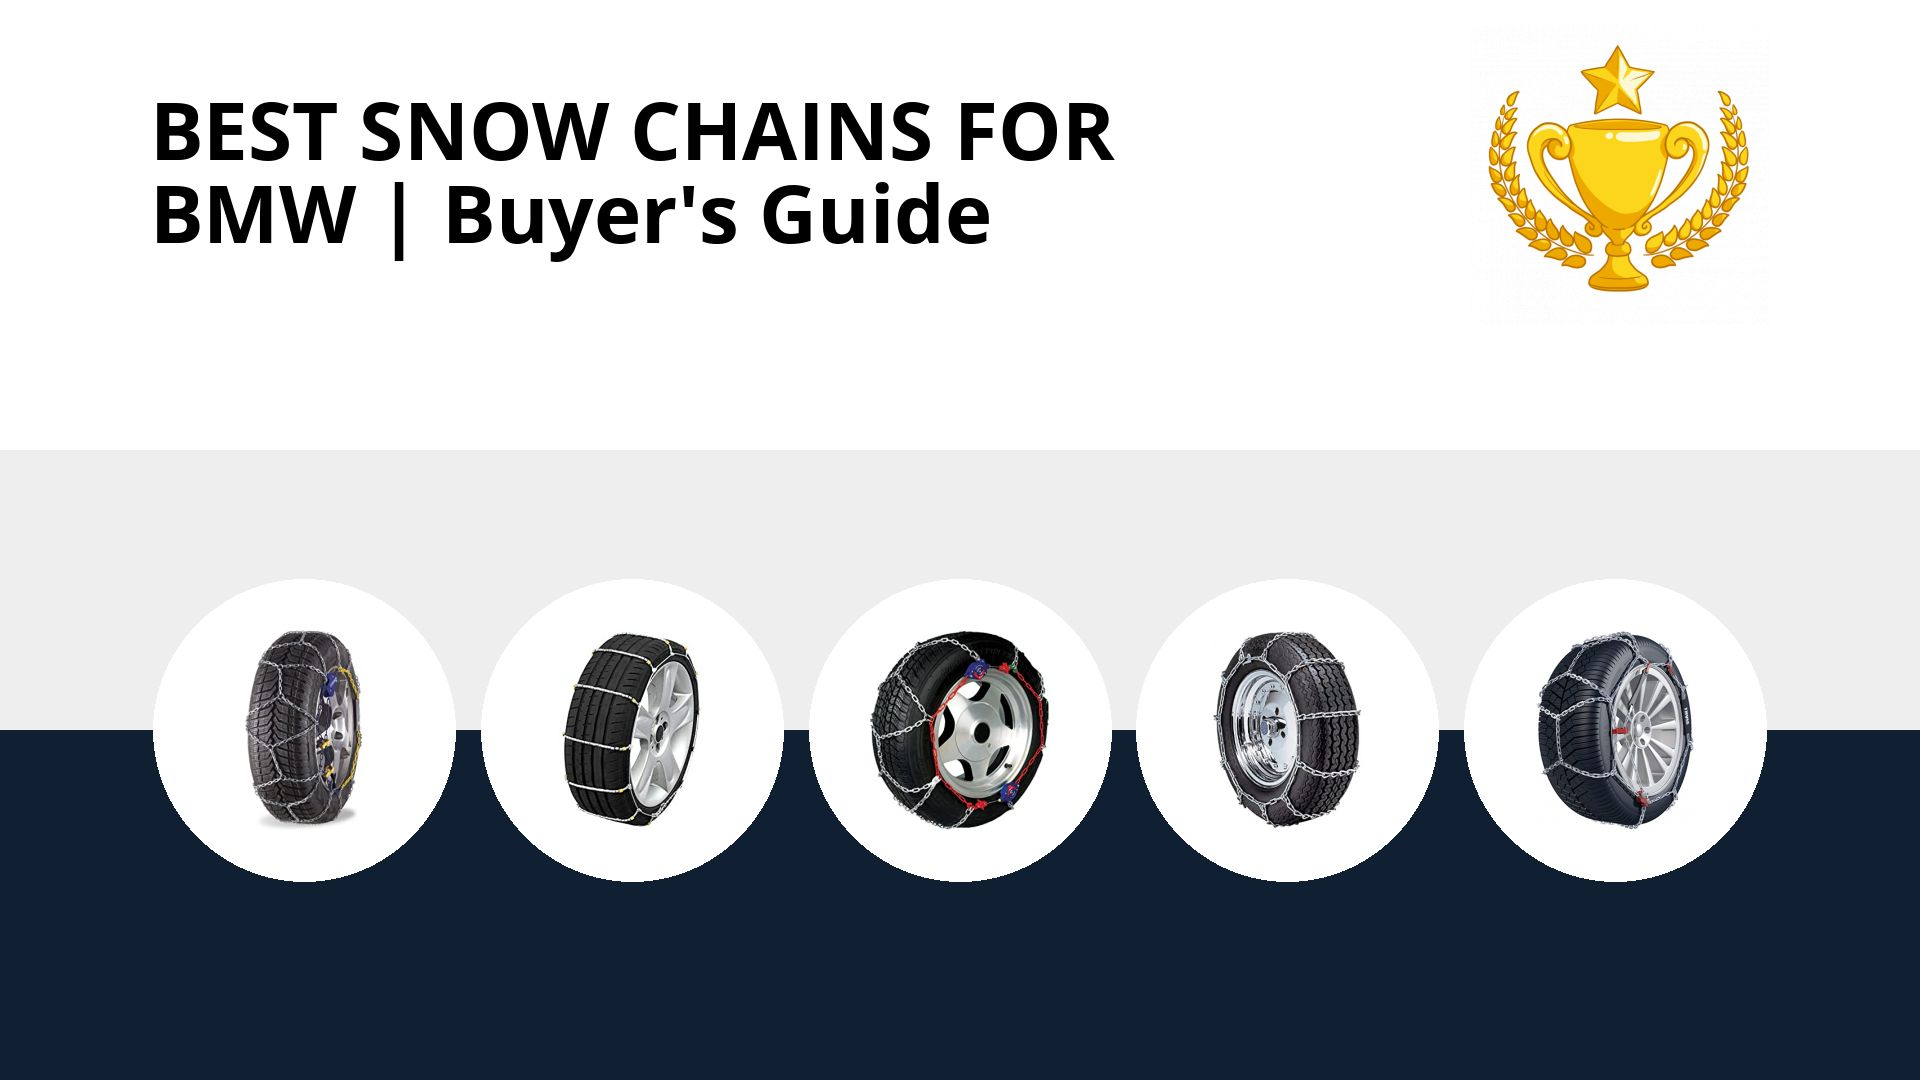 Best Snow Chains For Bmw: image